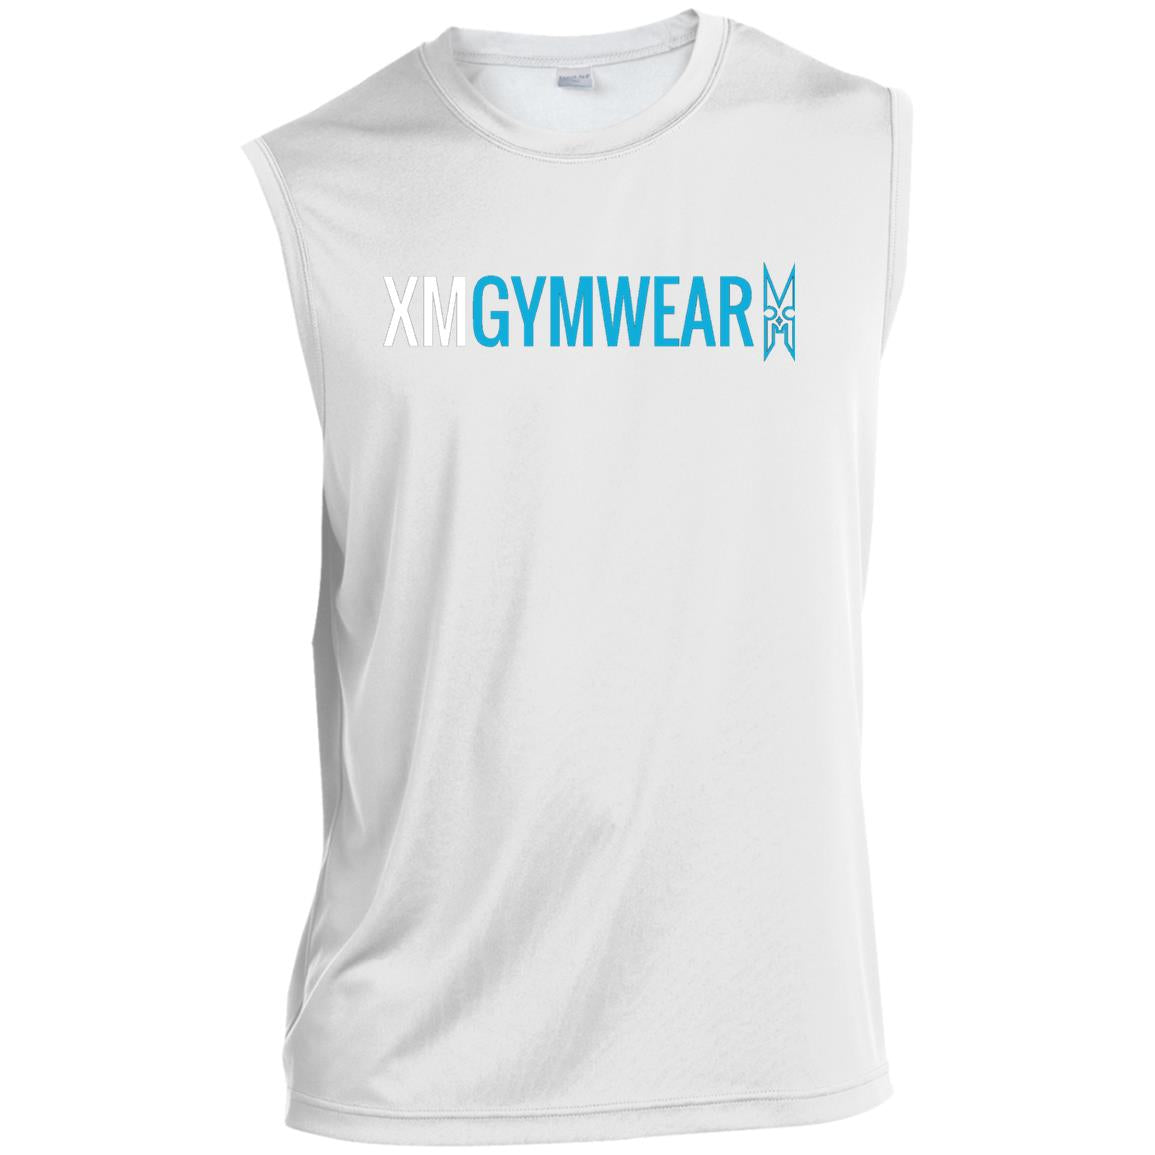 XMGYMWEAR Sleeveless Performance T-Shirt